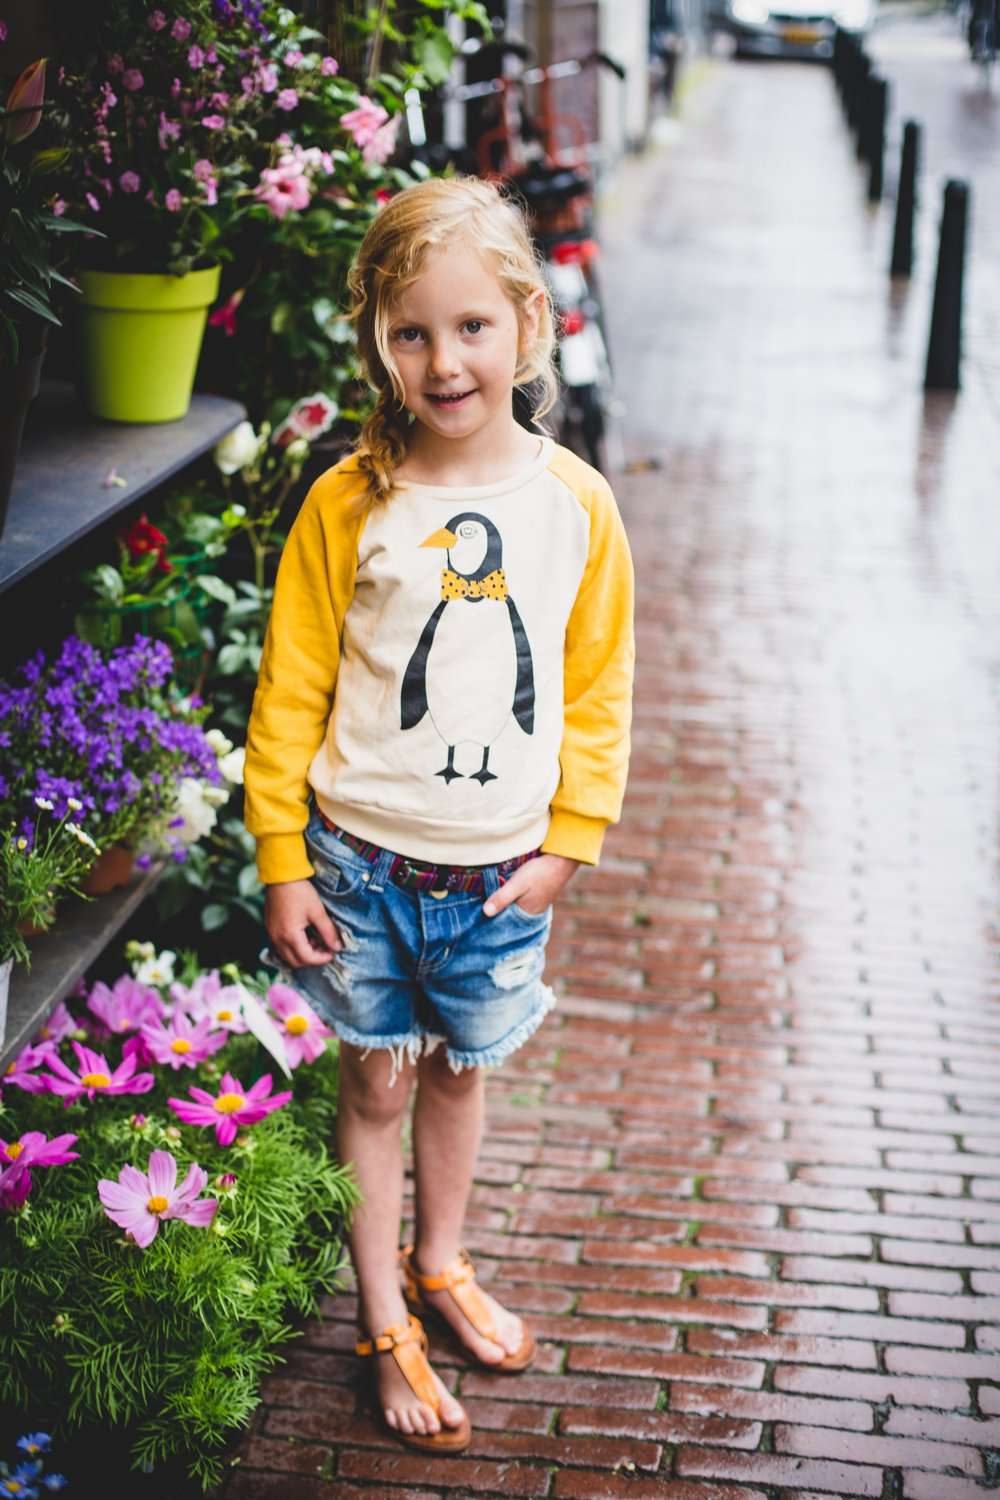 MIJS IN MINI RODINI EN LITTLE PIECES OUTFIT